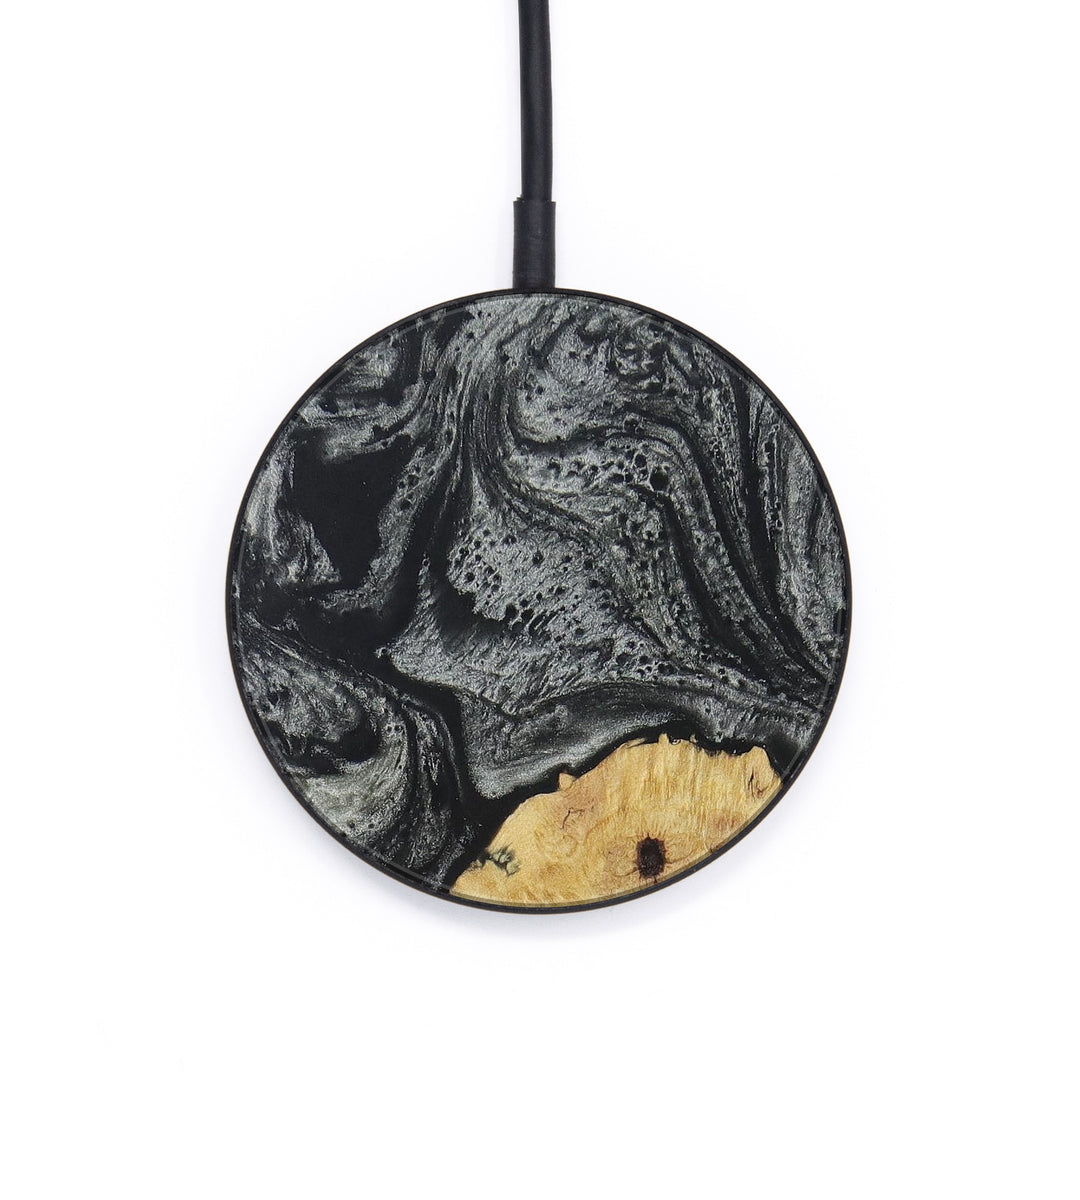 Circle Wood+Resin Wireless Charger - Audy (Black & White, 393673)